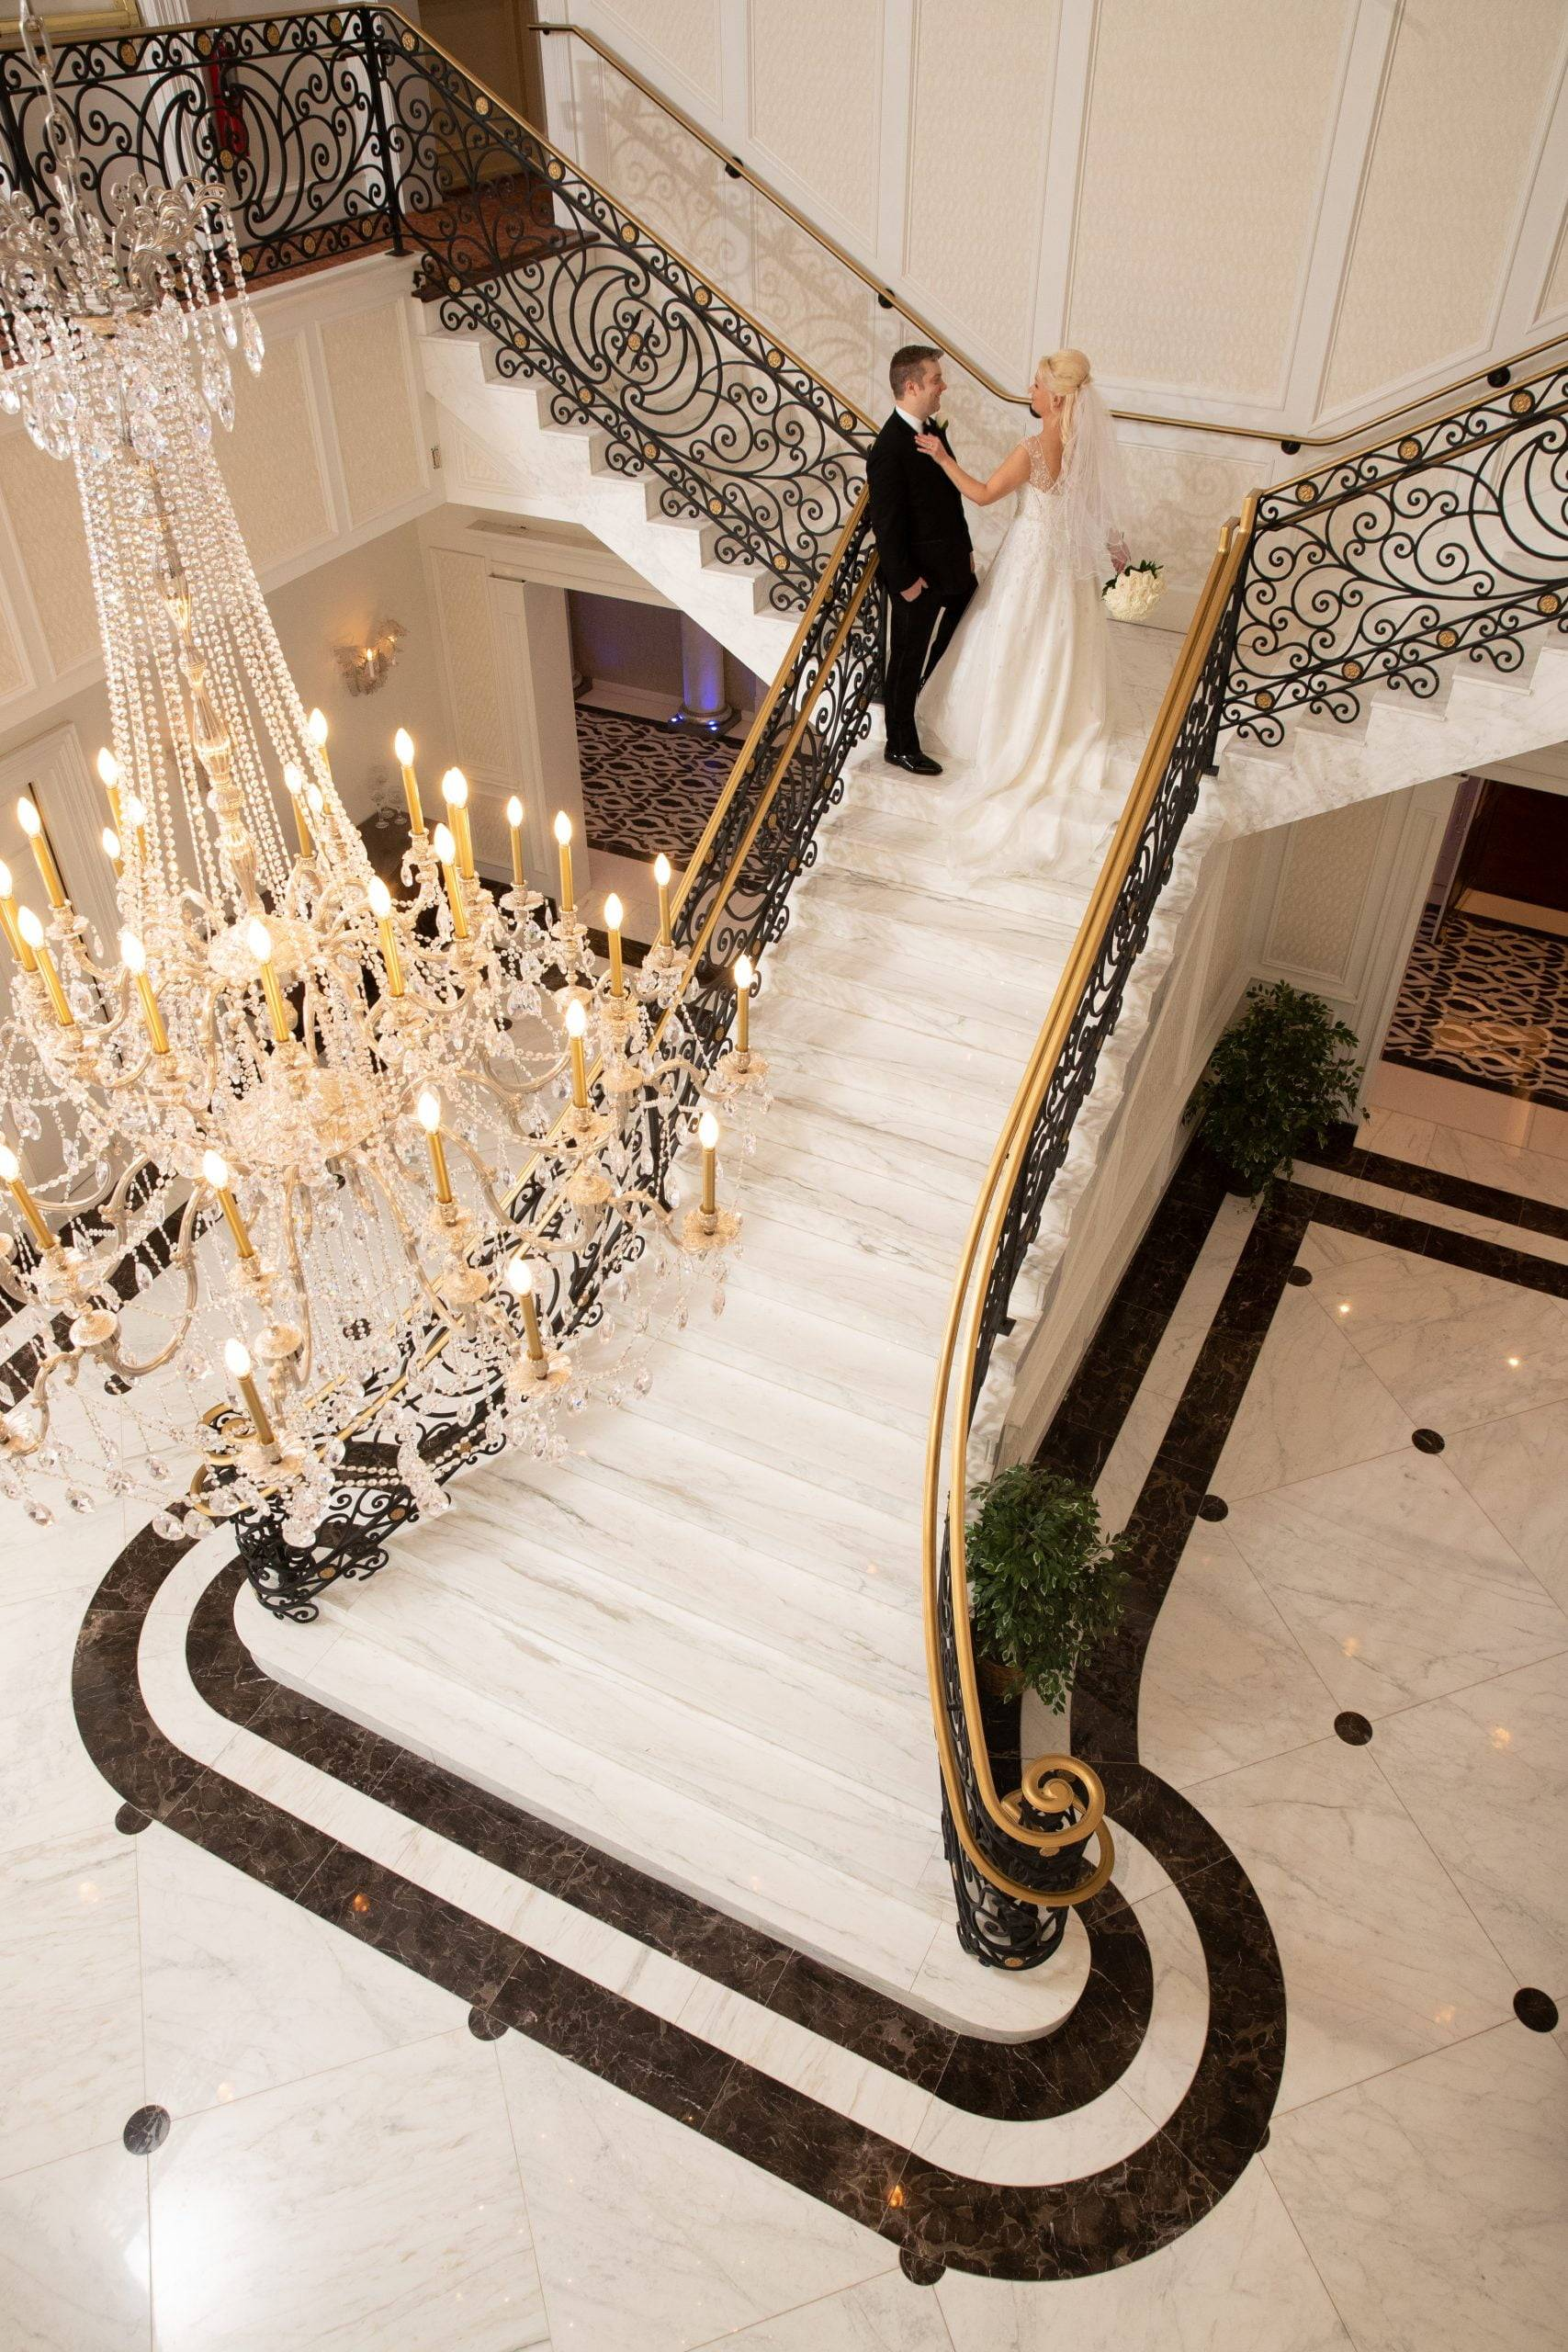 Meadow Wood bride and groom on staircase